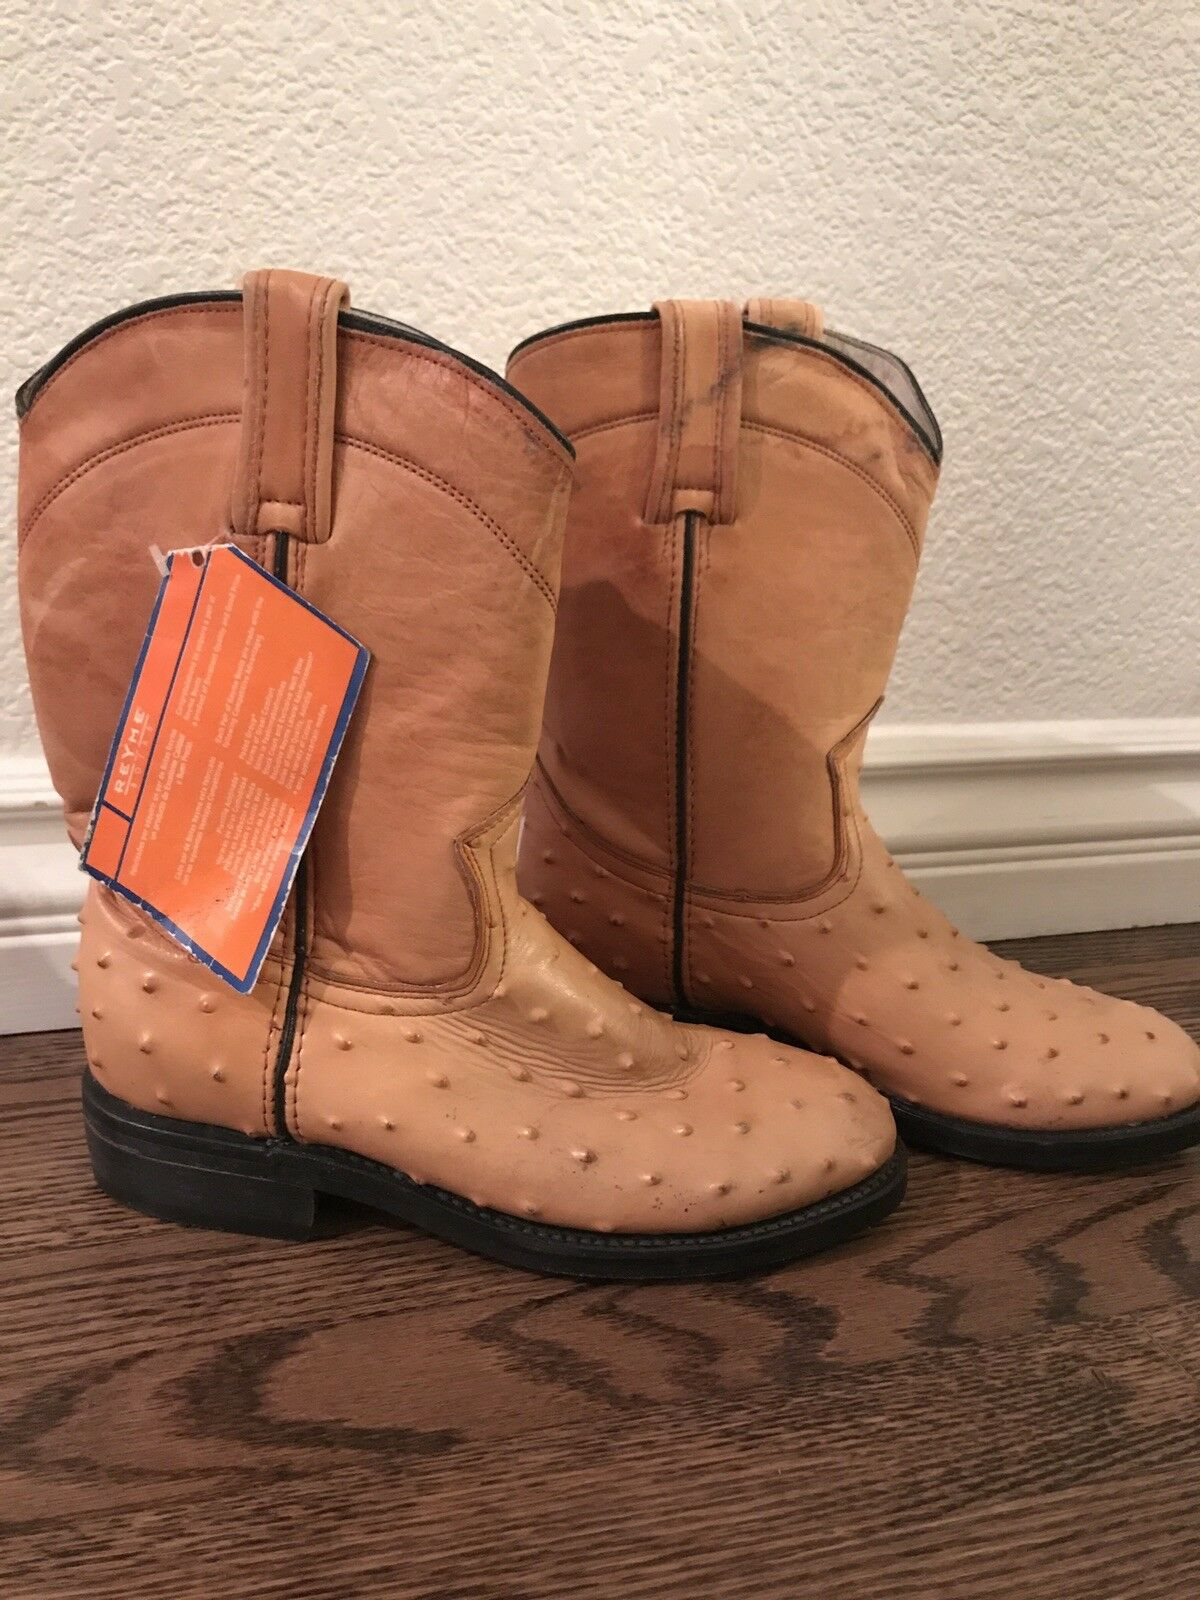 NEW tags REYME Mexican Boots Women's 7.5A  Tan leather Ostrich Western cowboy